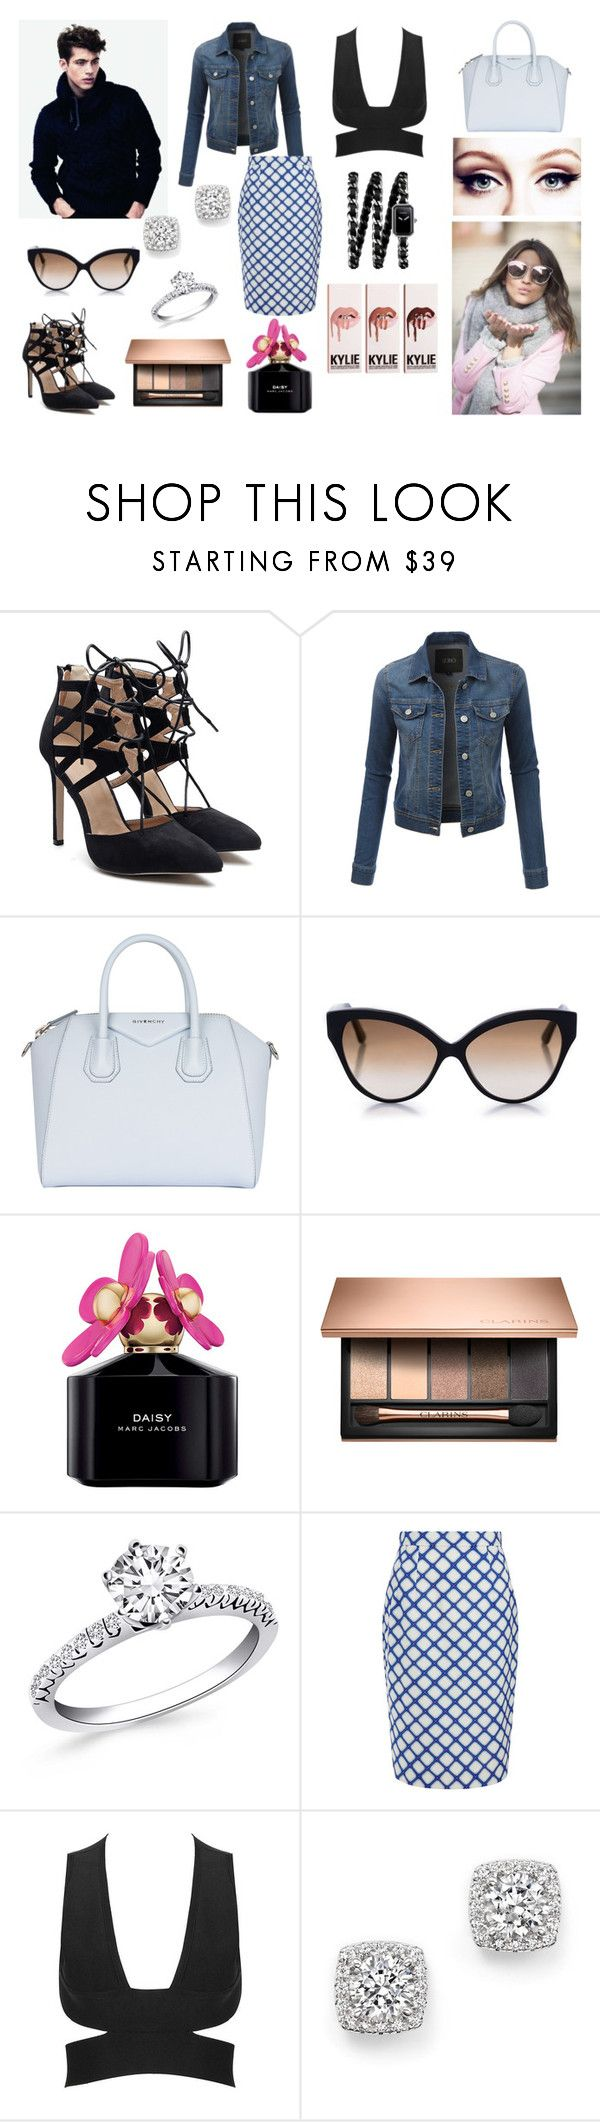 """Kiss Kiss"" by izzie1800 ❤ liked on Polyvore featuring LE3NO, Givenchy, Cutler and Gross, Marc Jacobs, Jonathan Saunders, Bloomingdale's and Chanel"